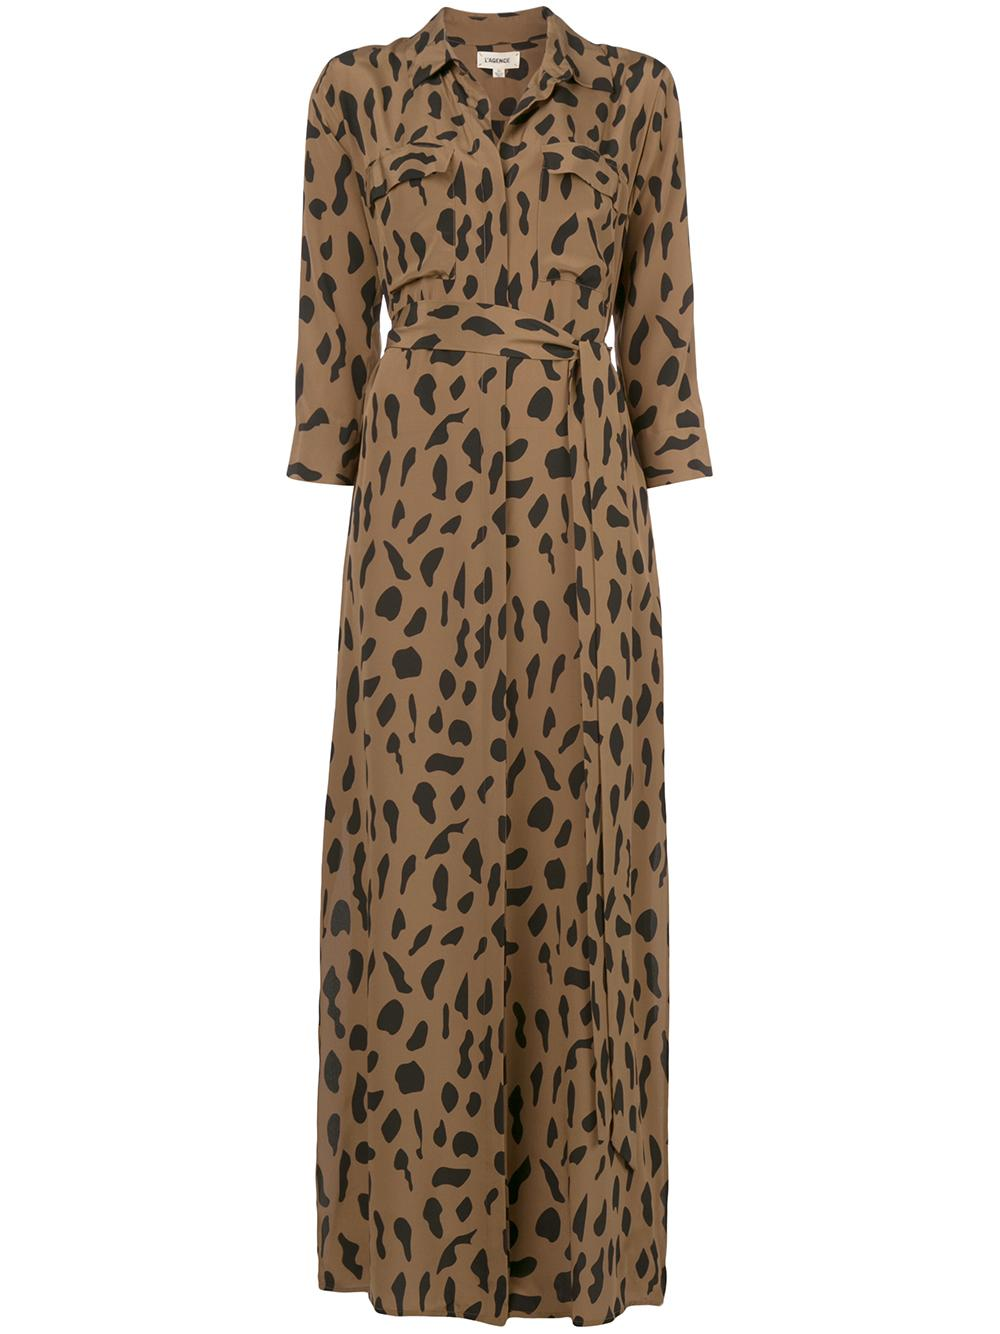 Cameron Animal Print Long Shirt Dress Item # 60466SPC